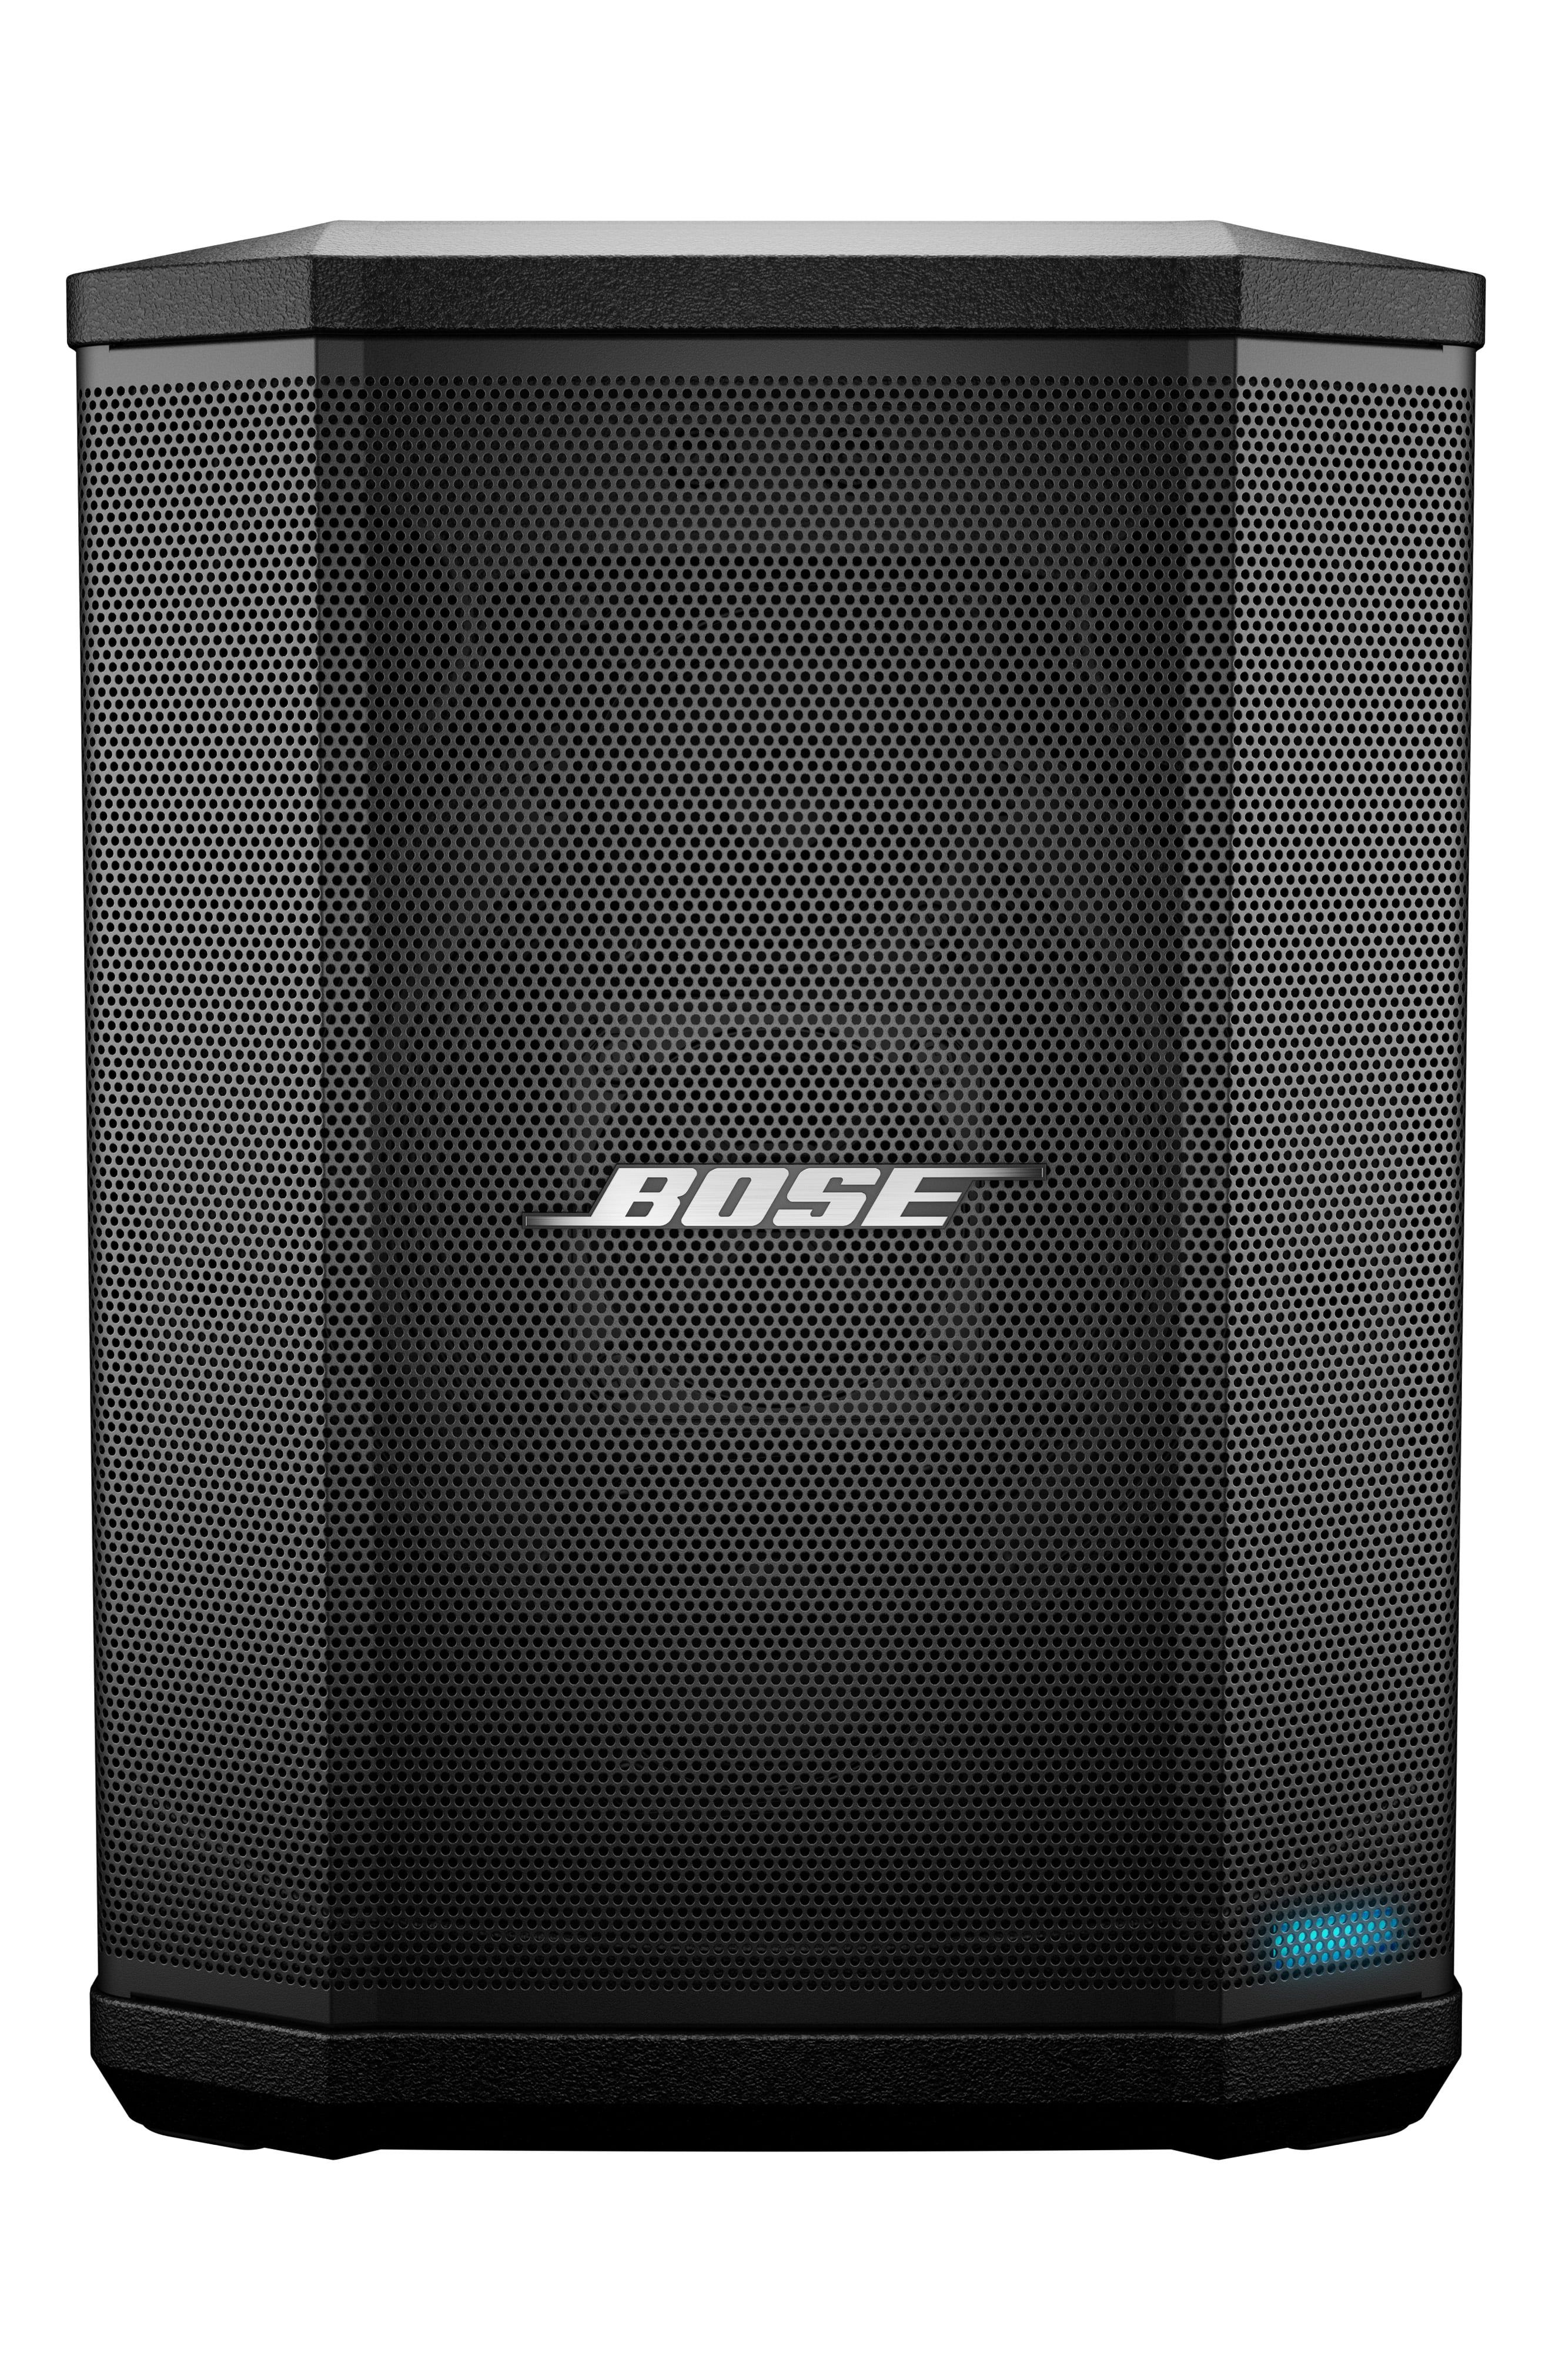 Bose S1 Pro Bluetooth Pa System Bluetooth Speaker Stands Ac Power